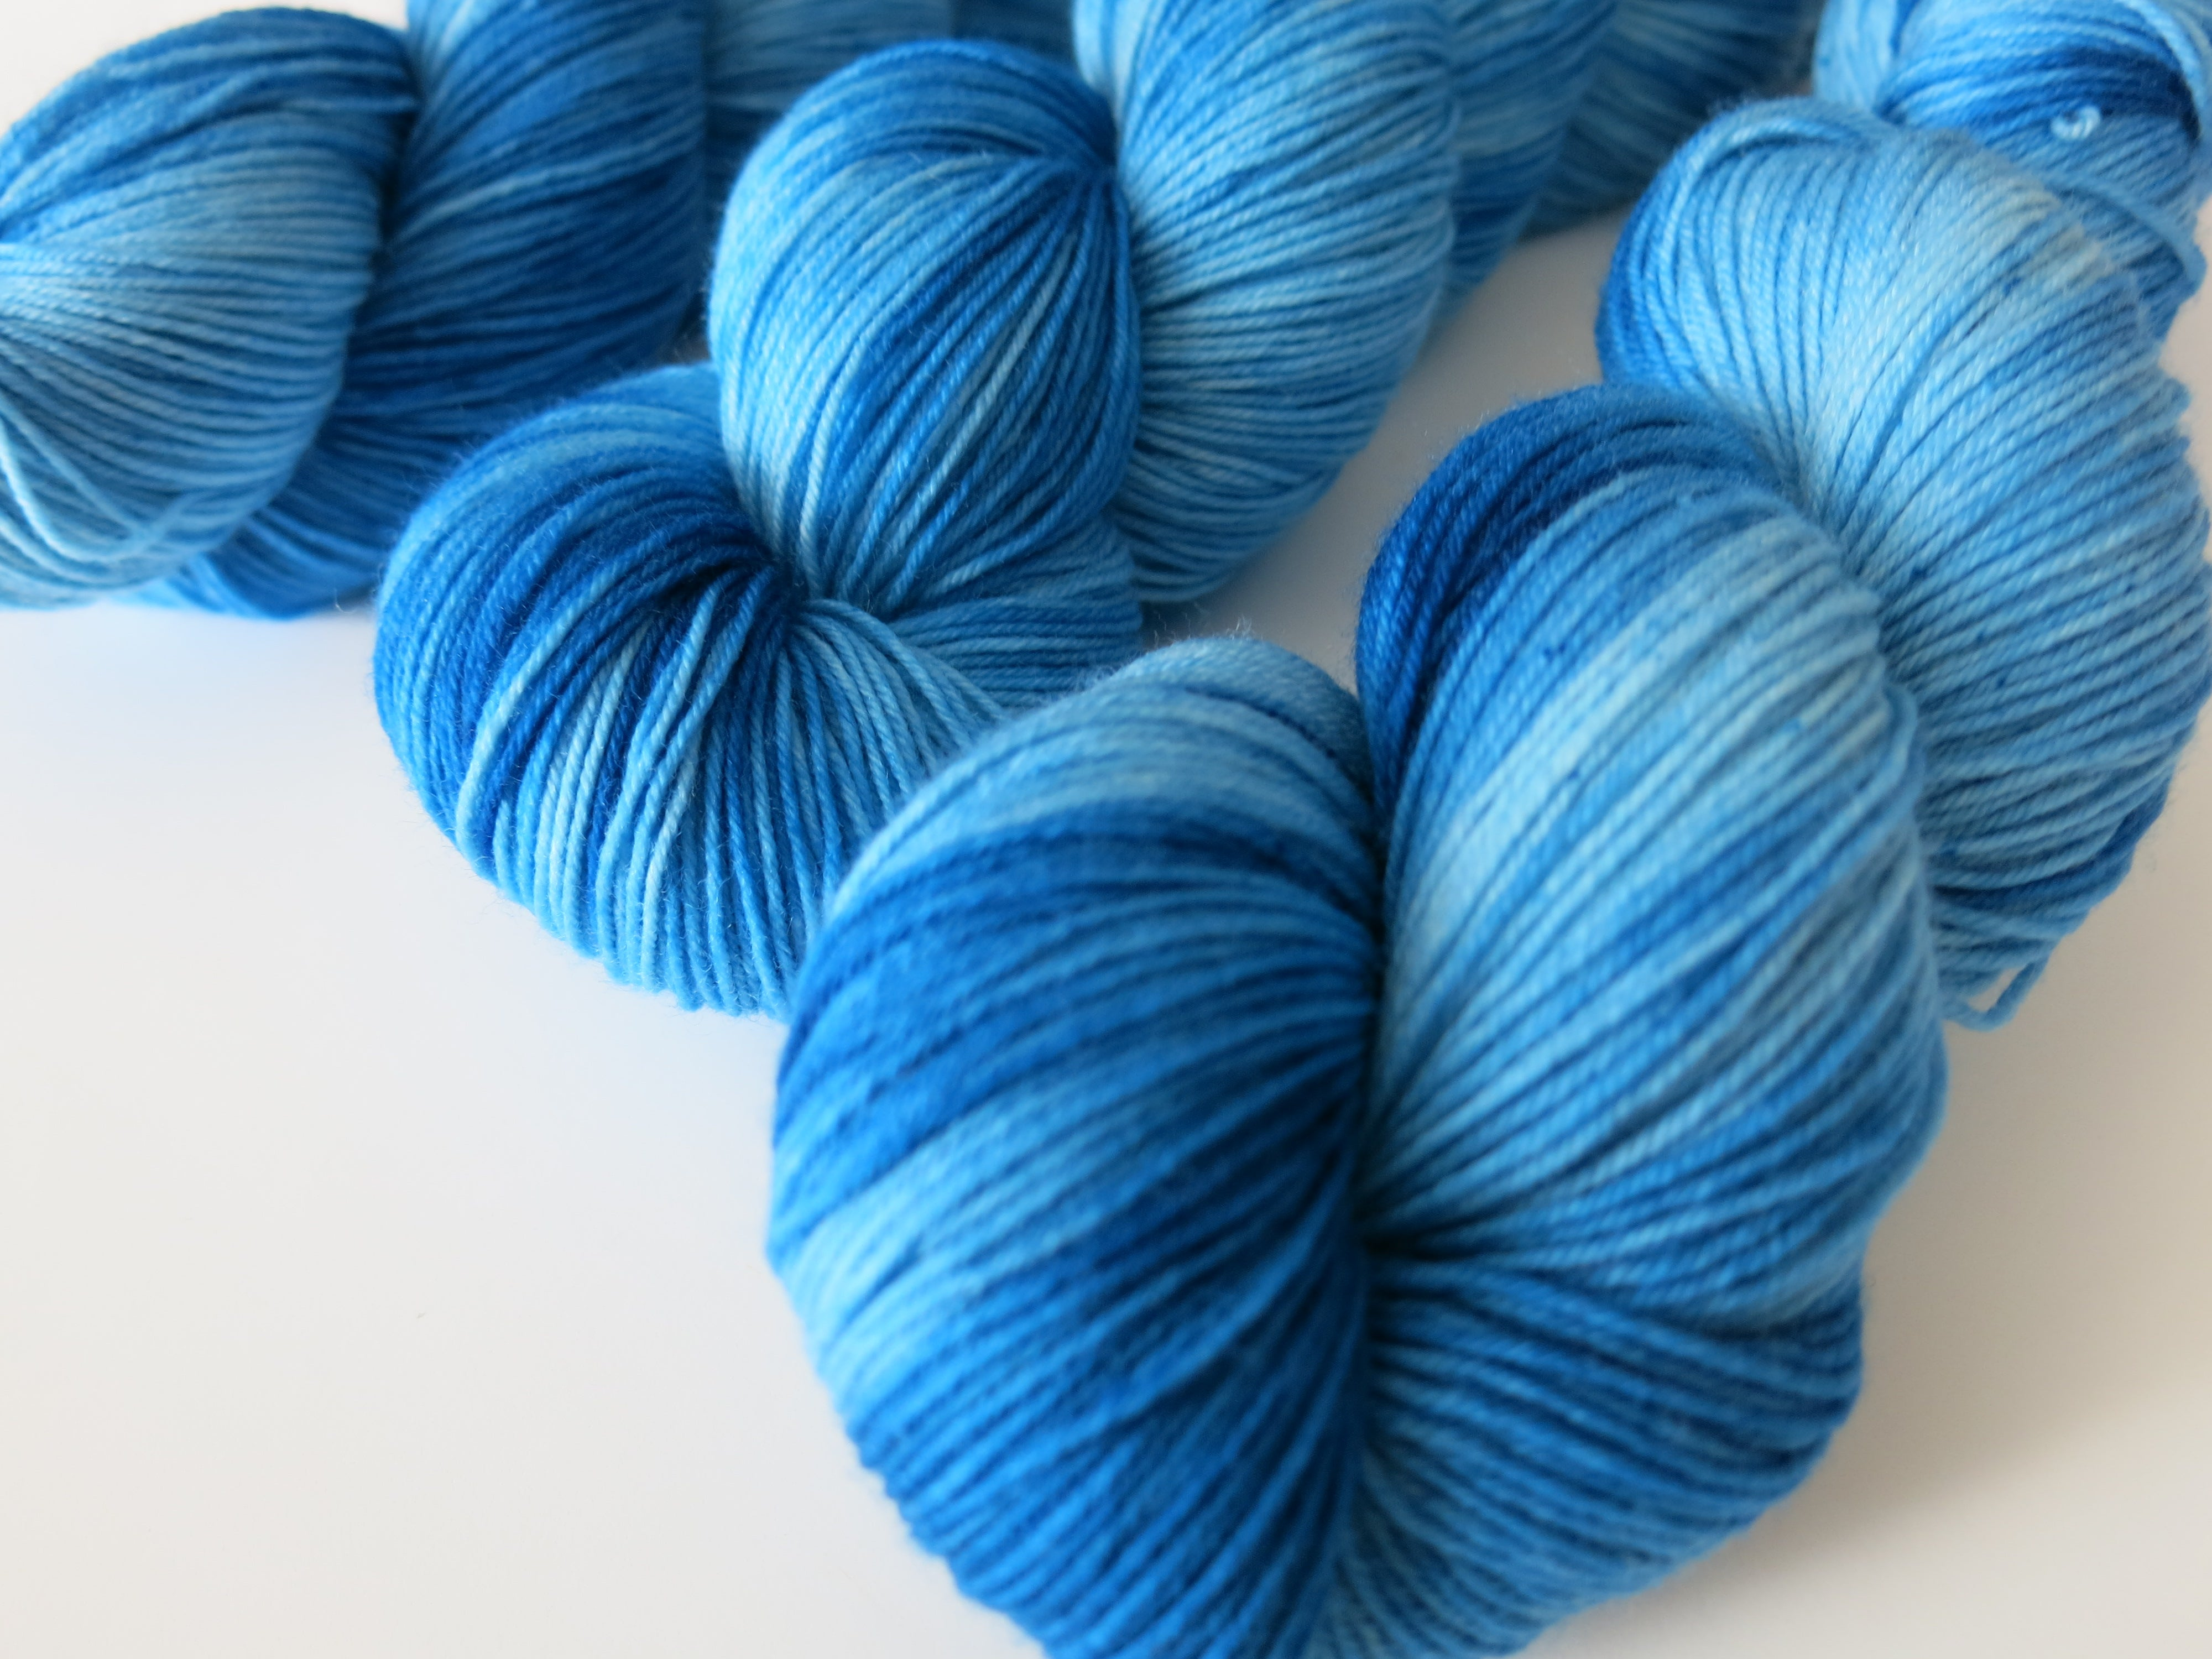 indie dyed bright blue merino yarn skeins for hand knits